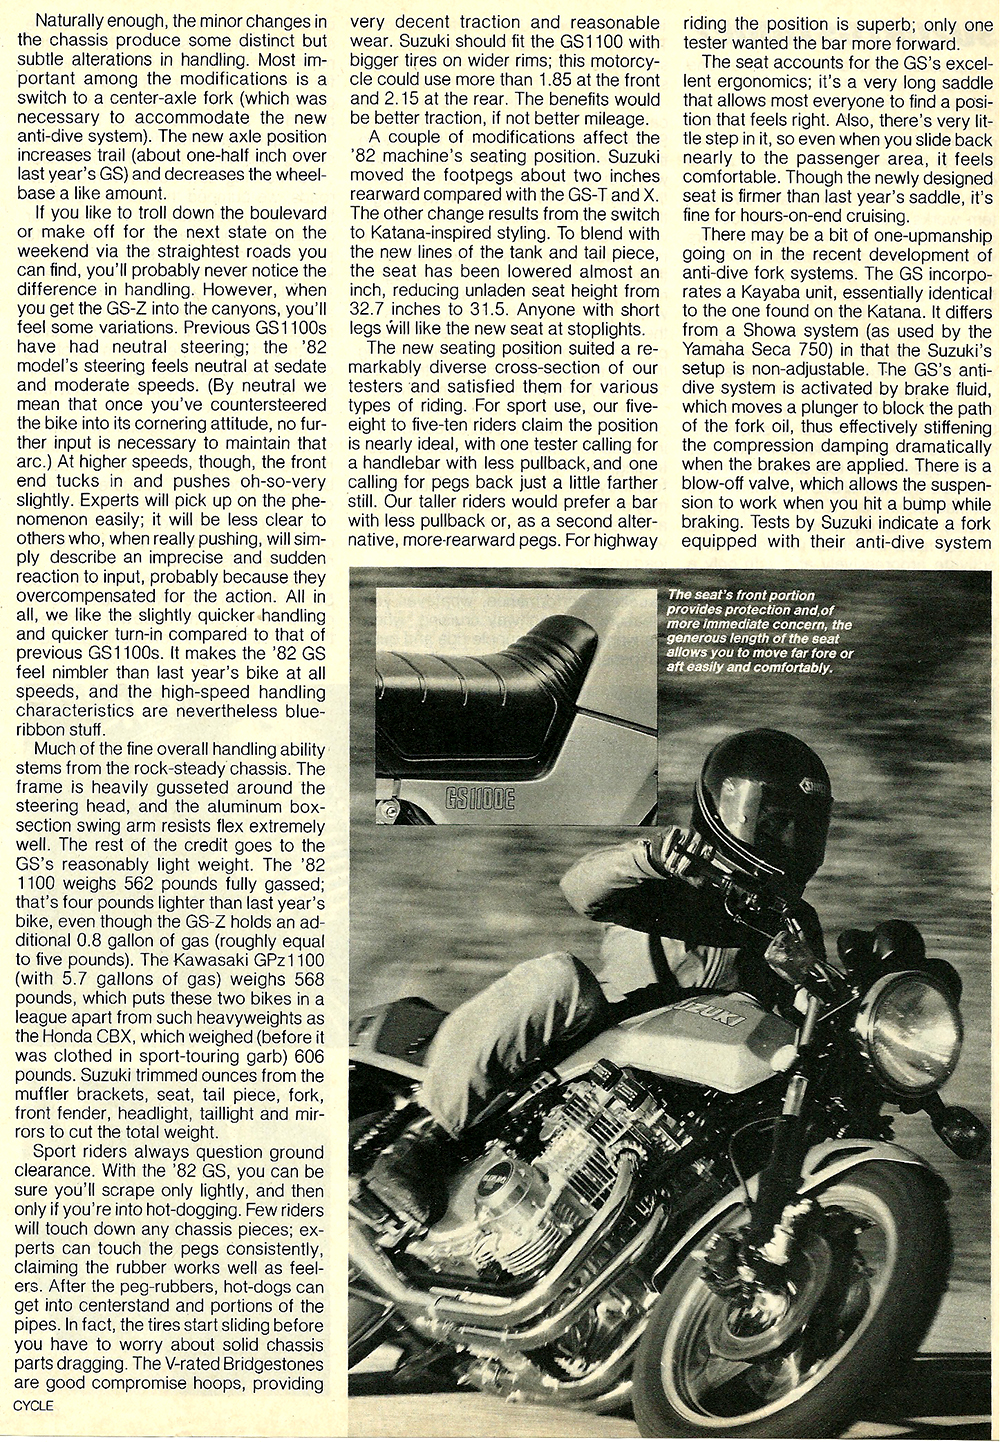 1982 Suzuki GS1100EZ road test 07.jpg